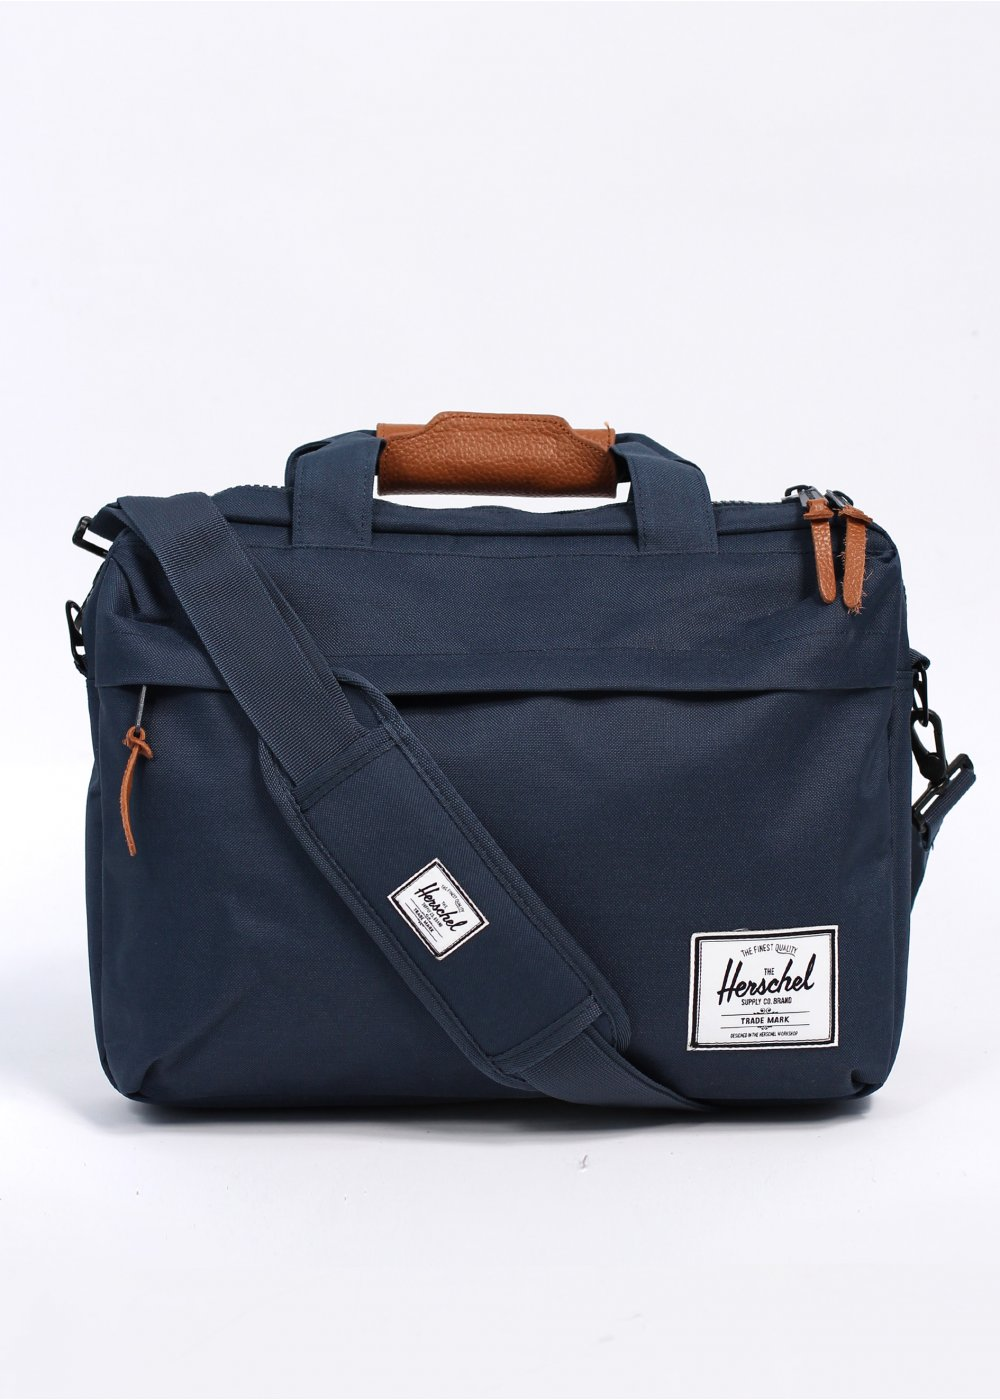 Herschel Supply Co Clark Bag - Navy 791dc72966ad9